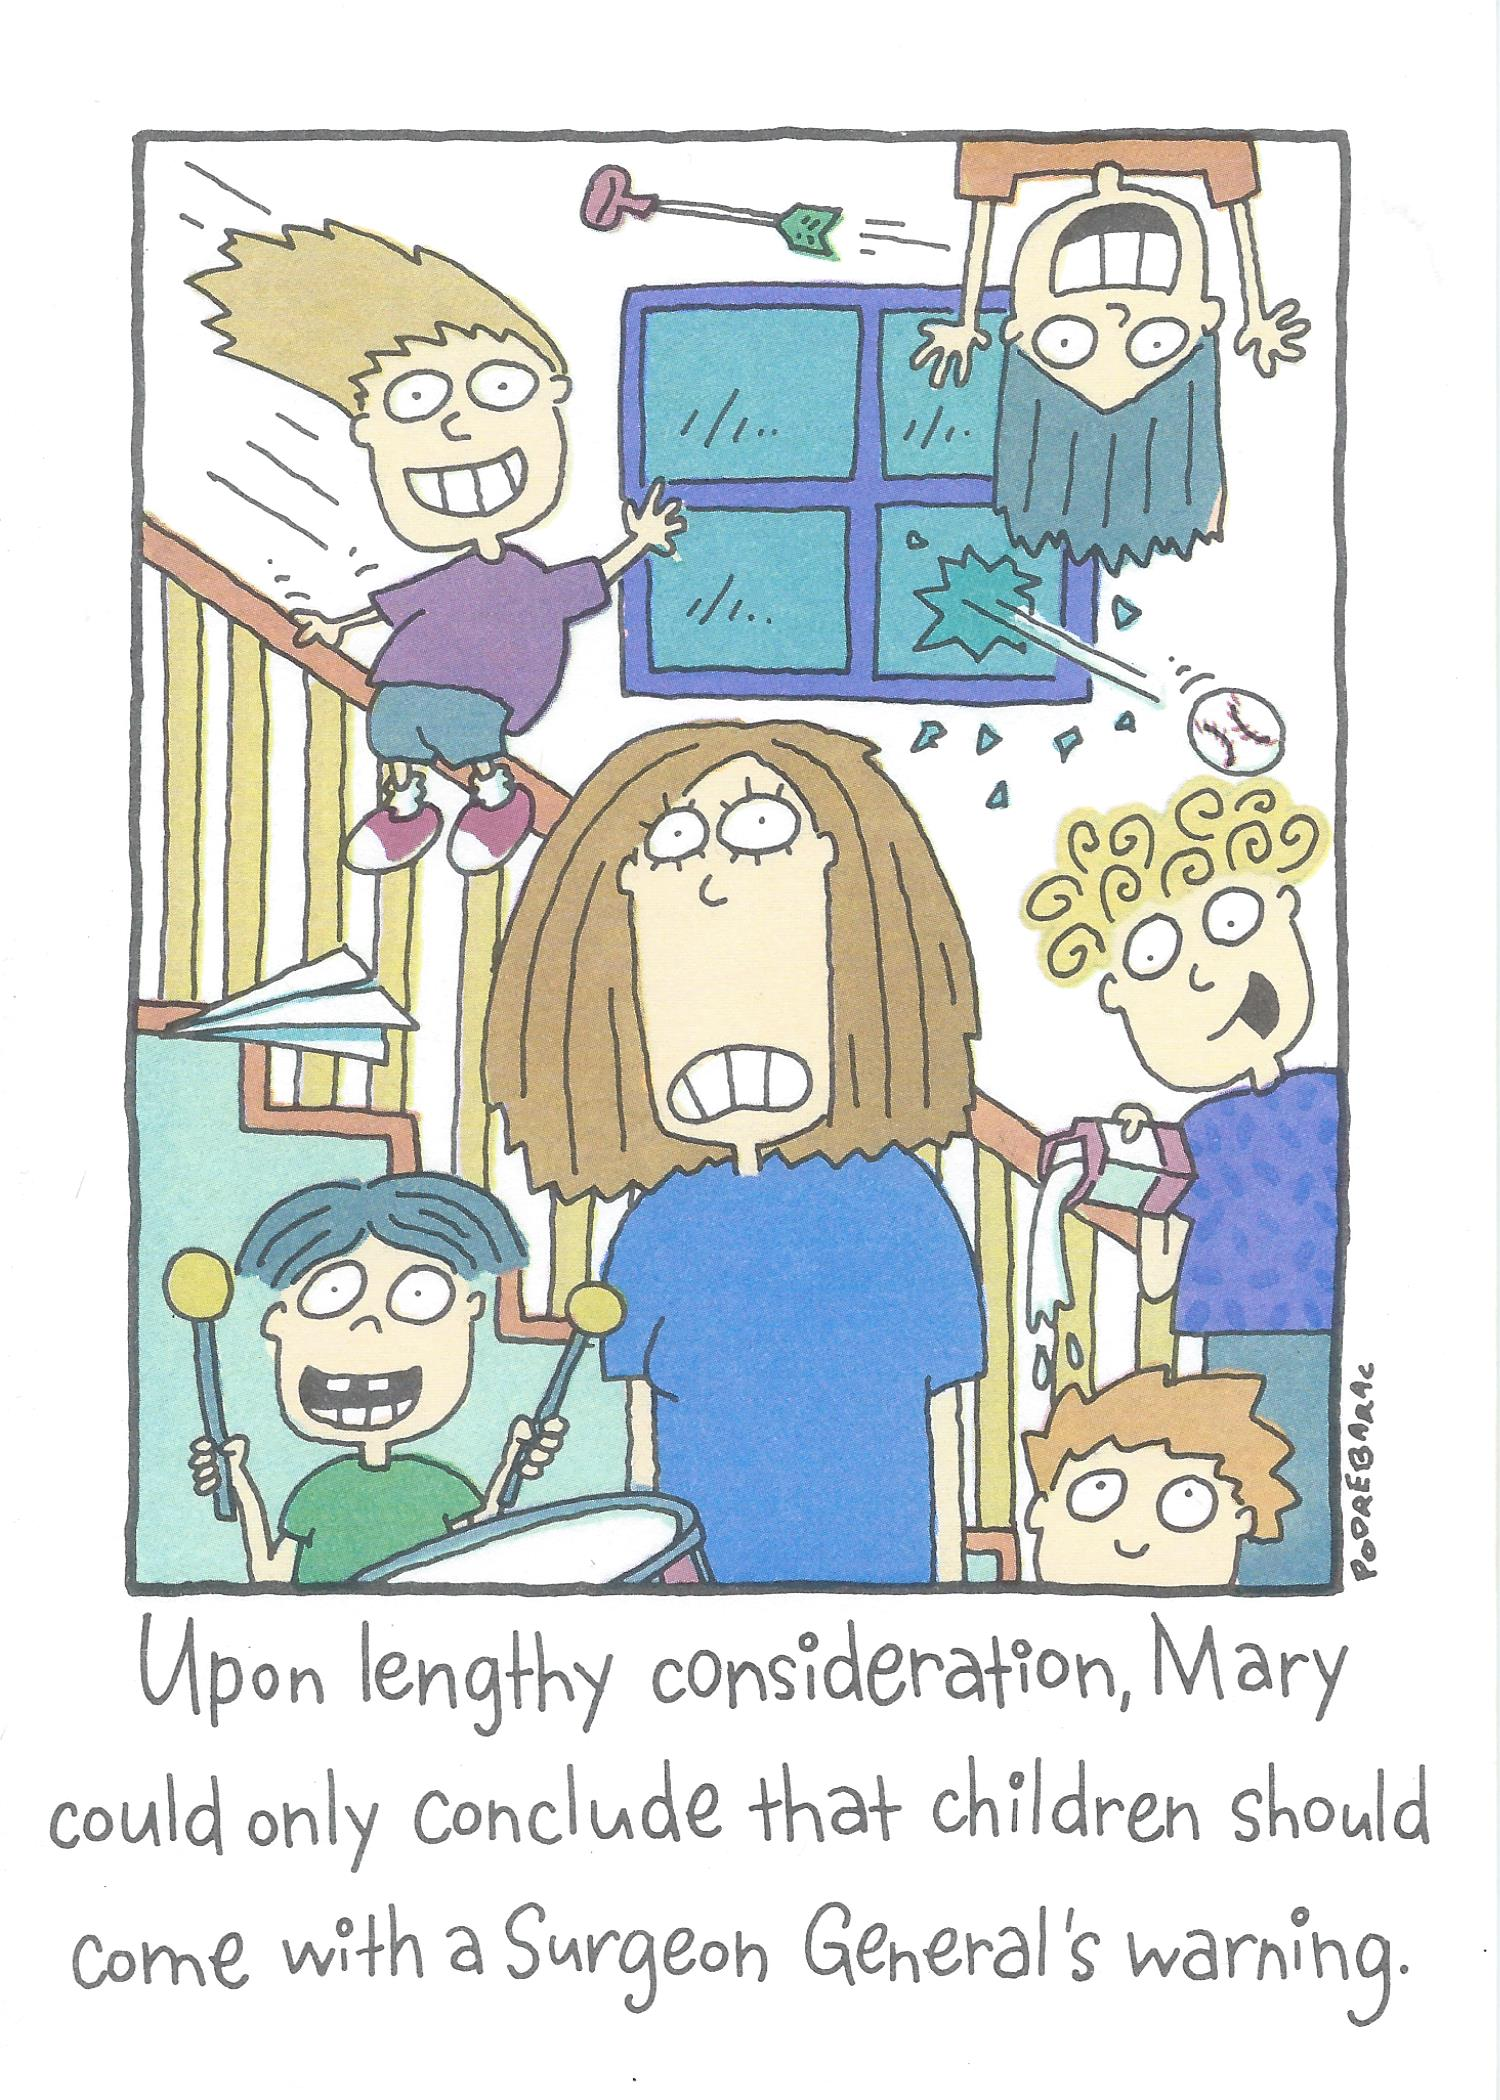 Upon lengthy consideration, Mary could only conclude that children should come with a Surgeon General's warning.